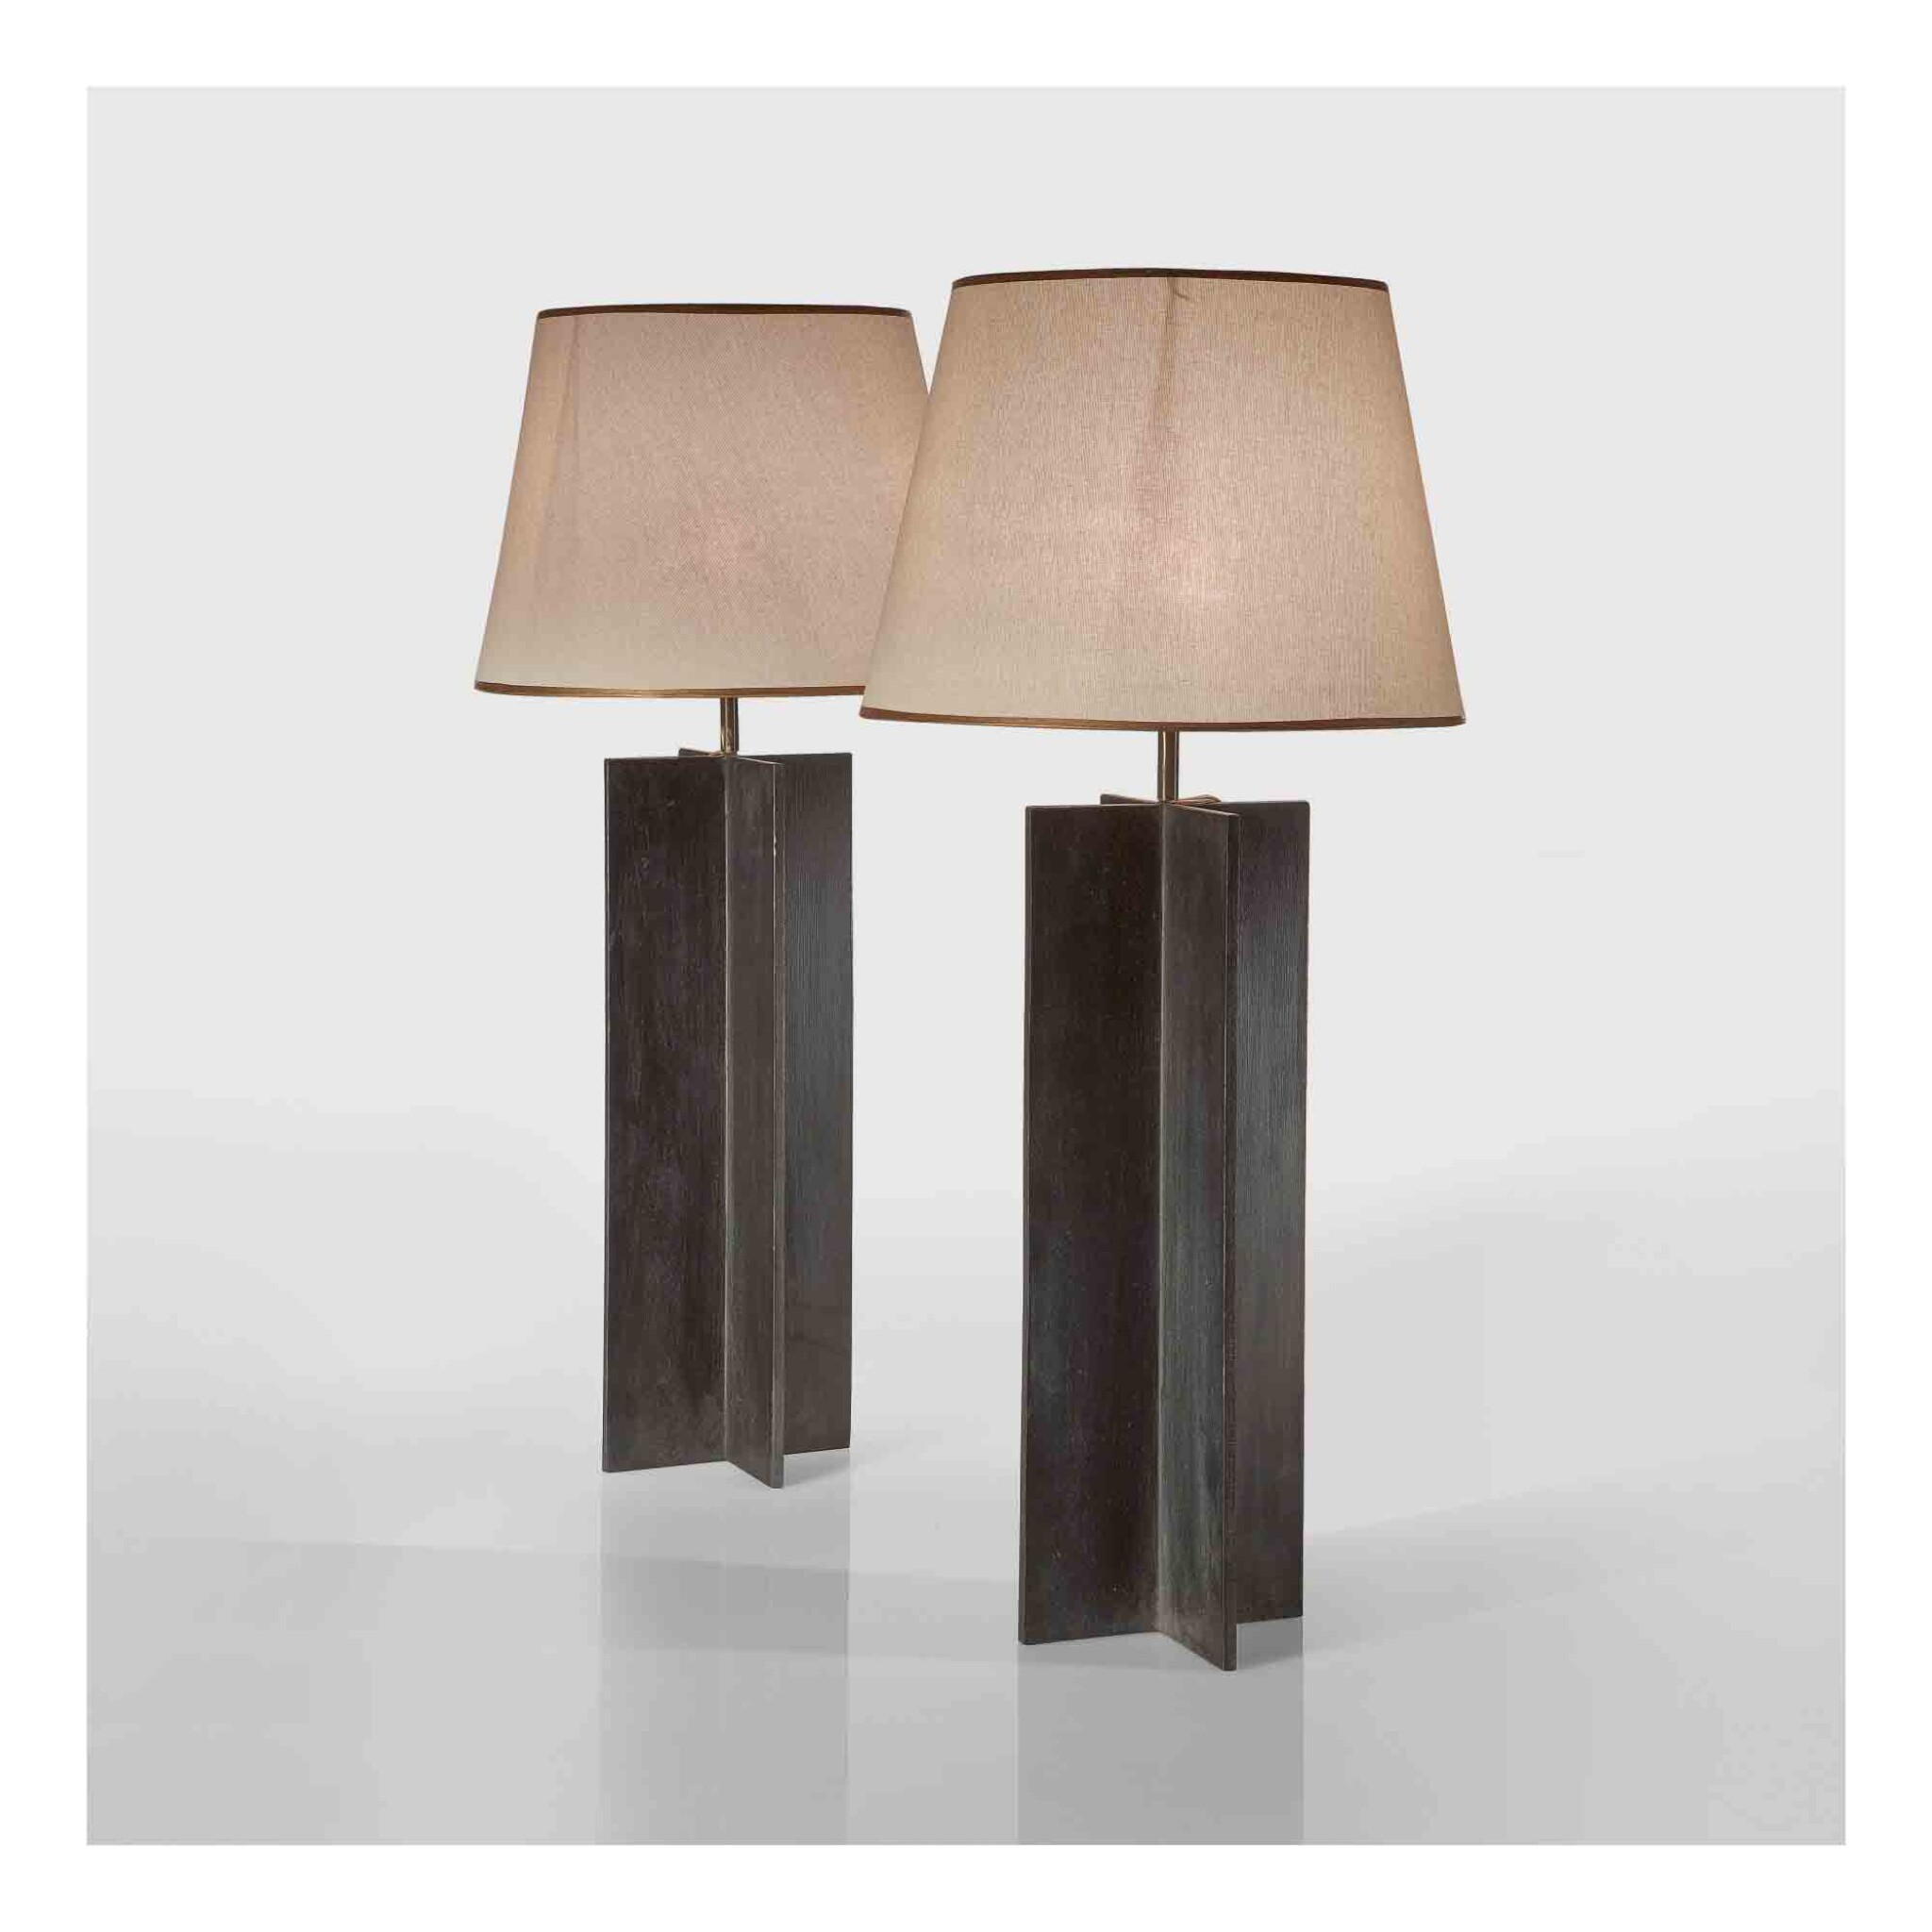 """View 1 of Lot 351. Pair of """"Croisillon"""" Table Lamps."""